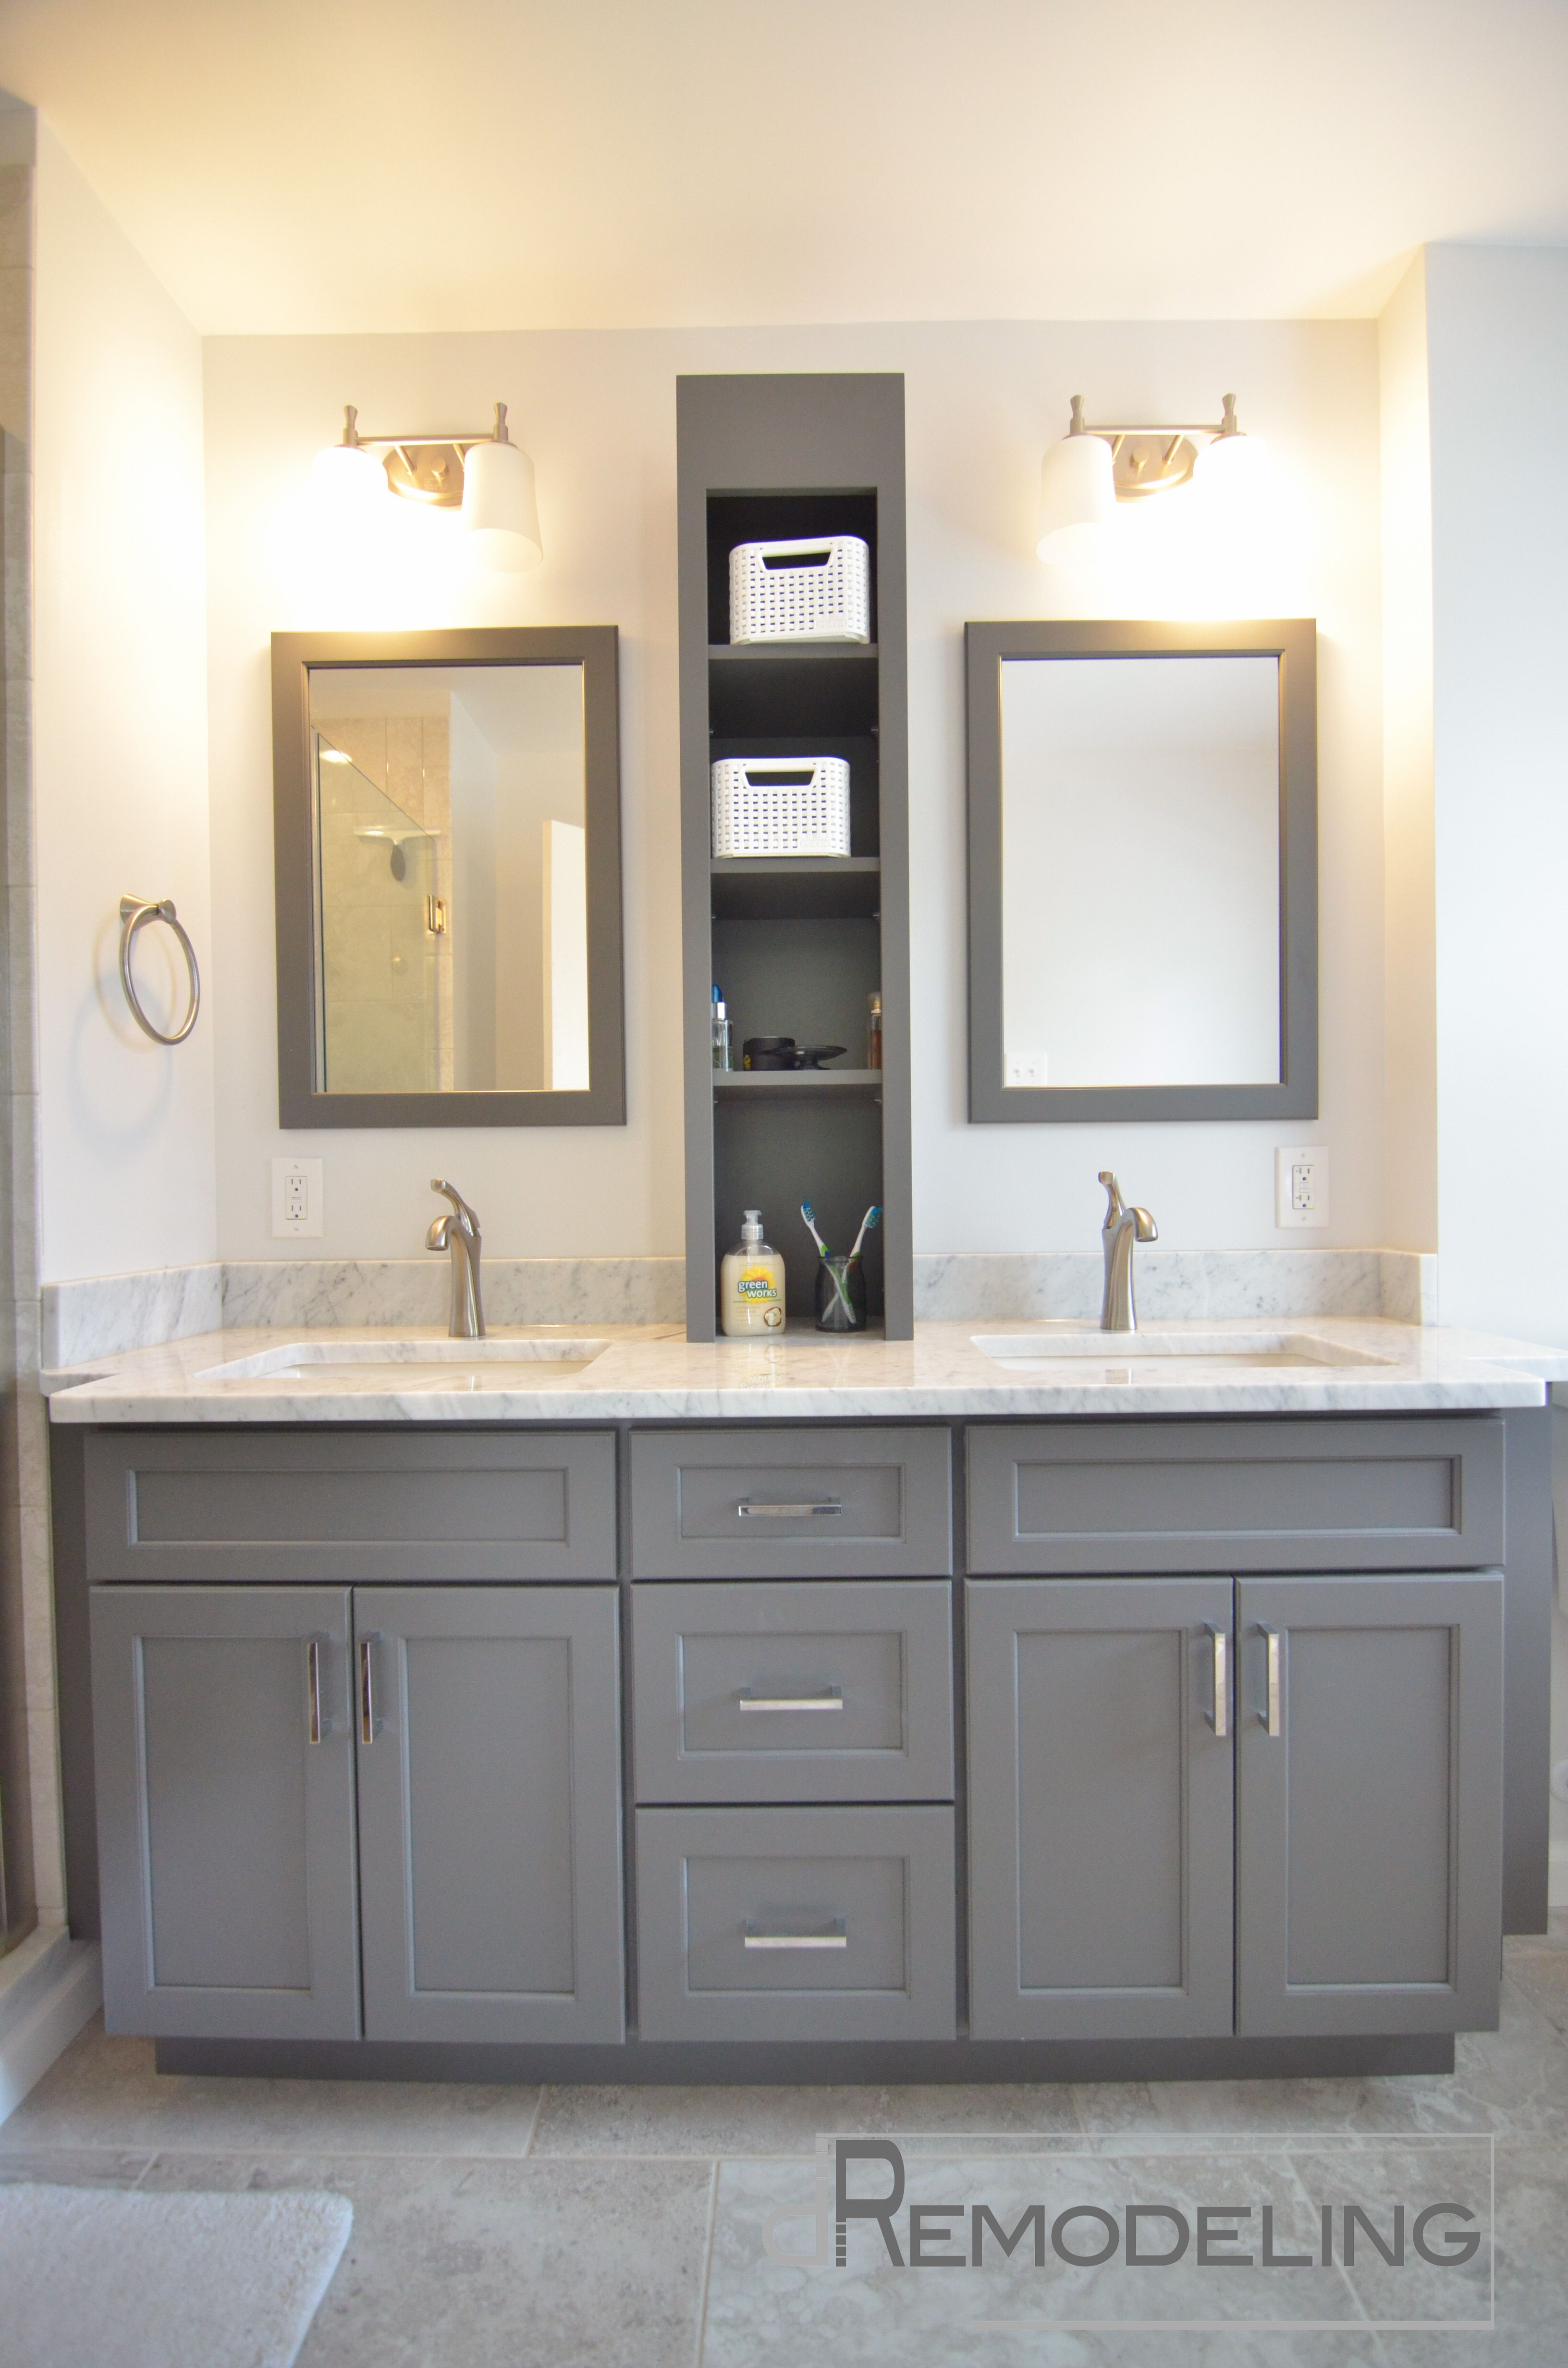 Bathroom Vanity With 2 Mirrors Small Space Bathroom Design Small Space Bathroom Bathroom Remodel Master